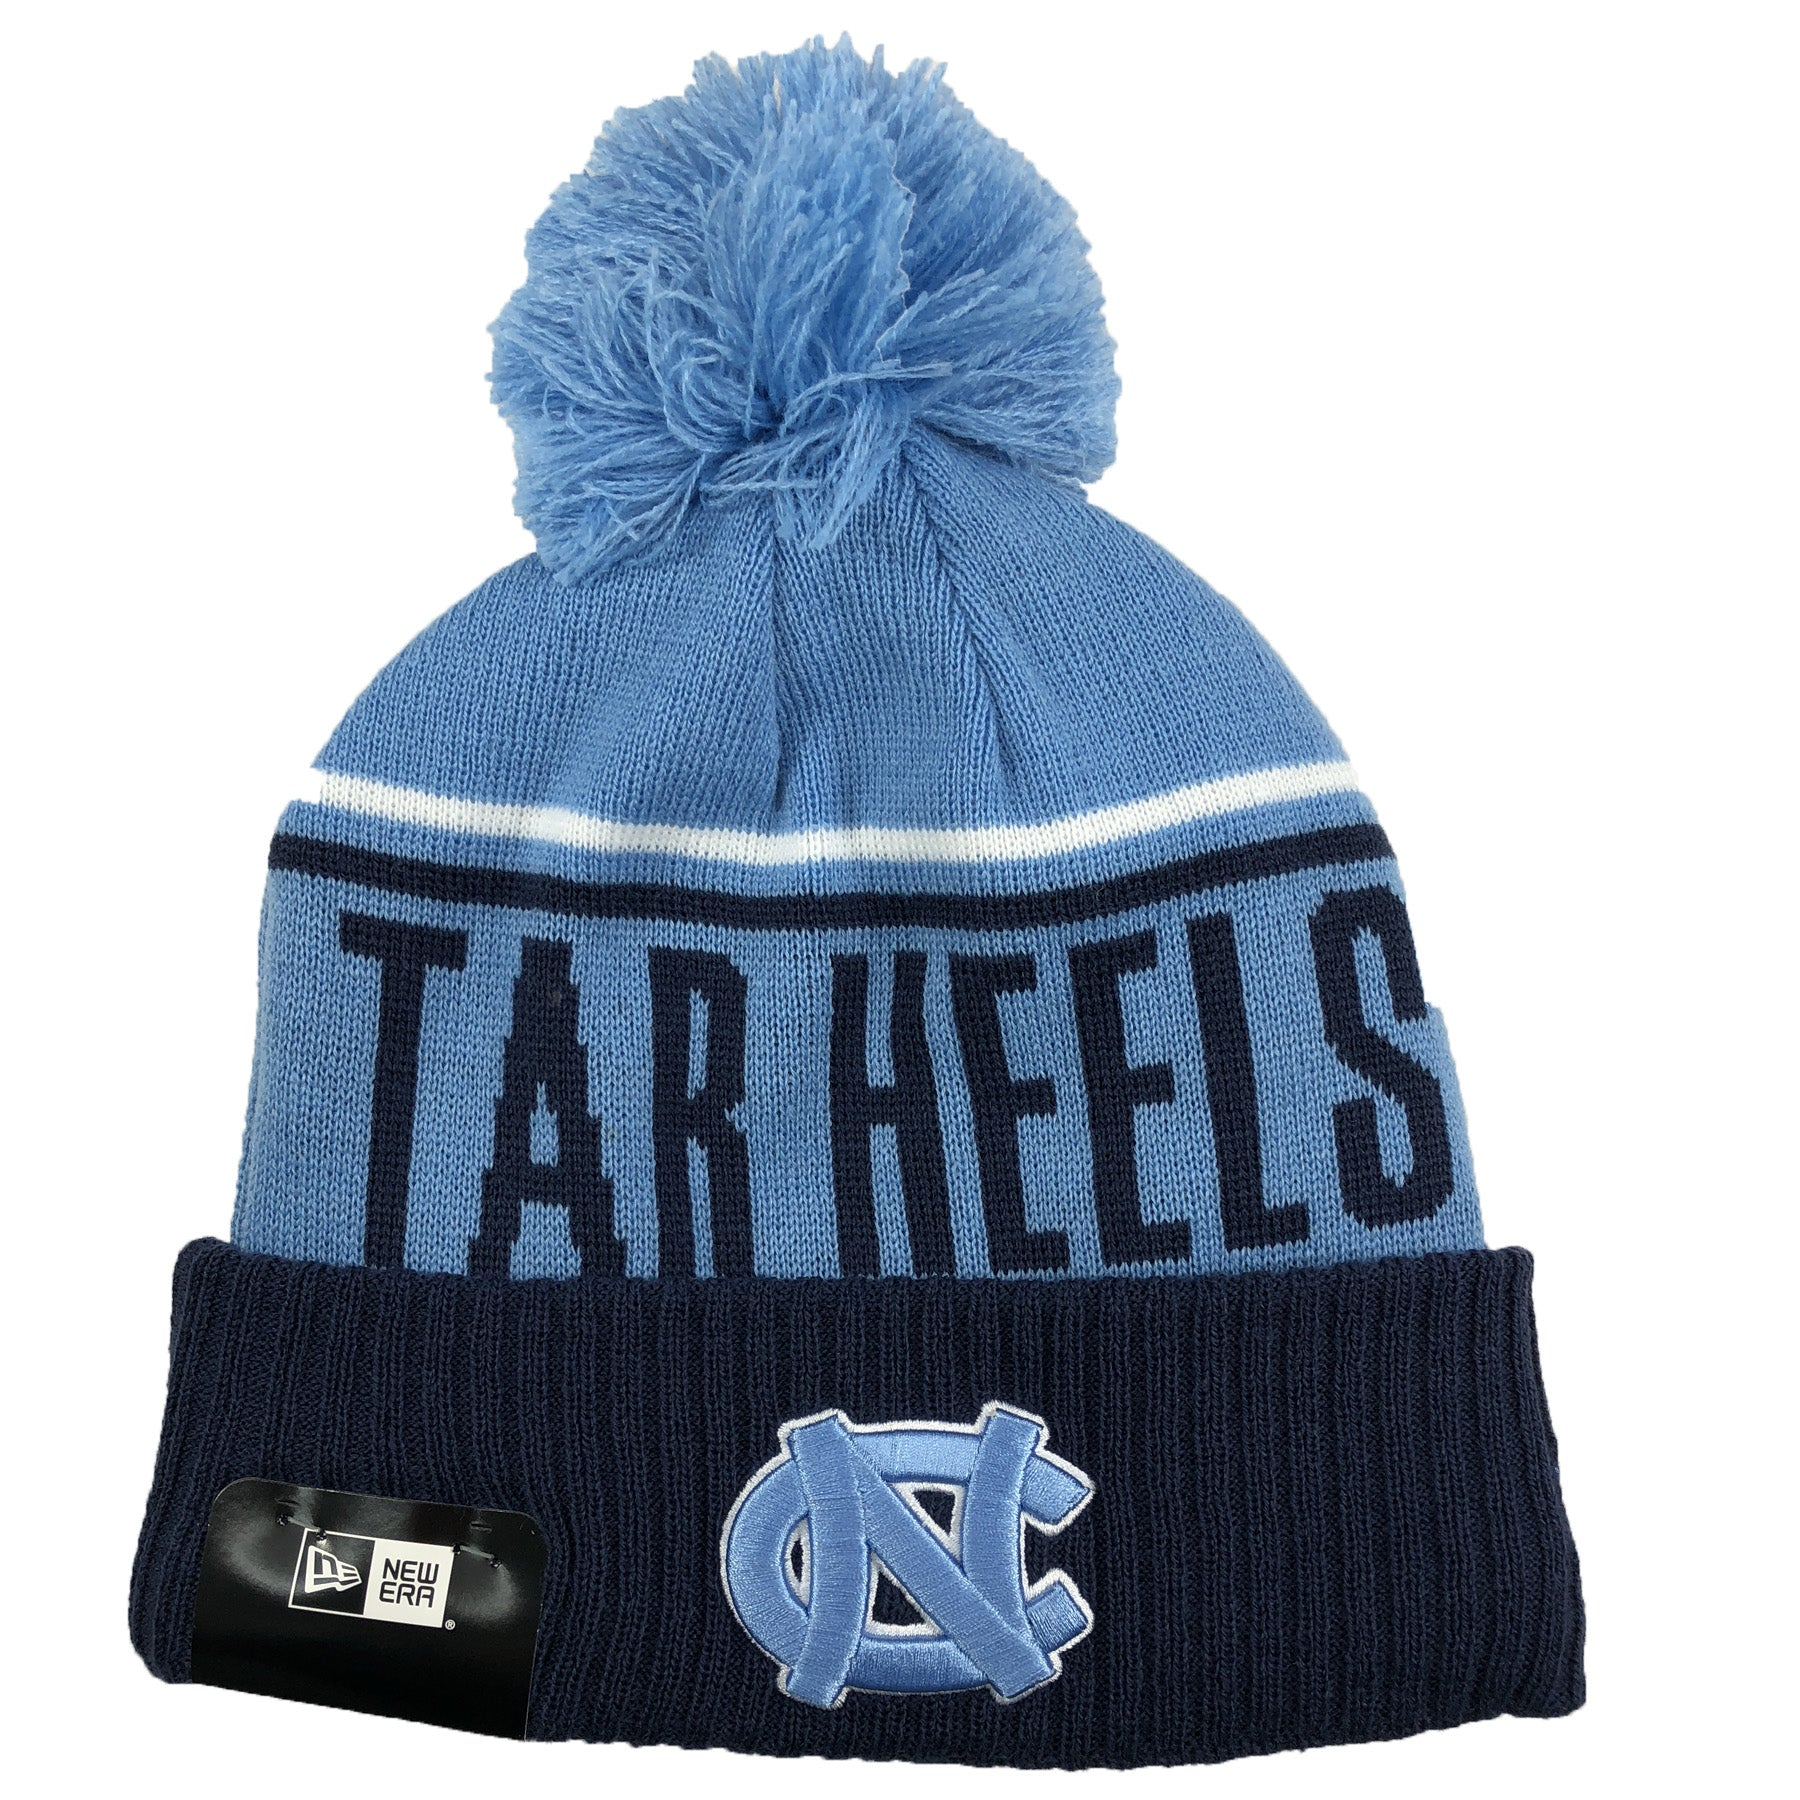 2d232a664d5 embroidered on the front of the unc tarheels winter fleece-lined beanie is  the UNC